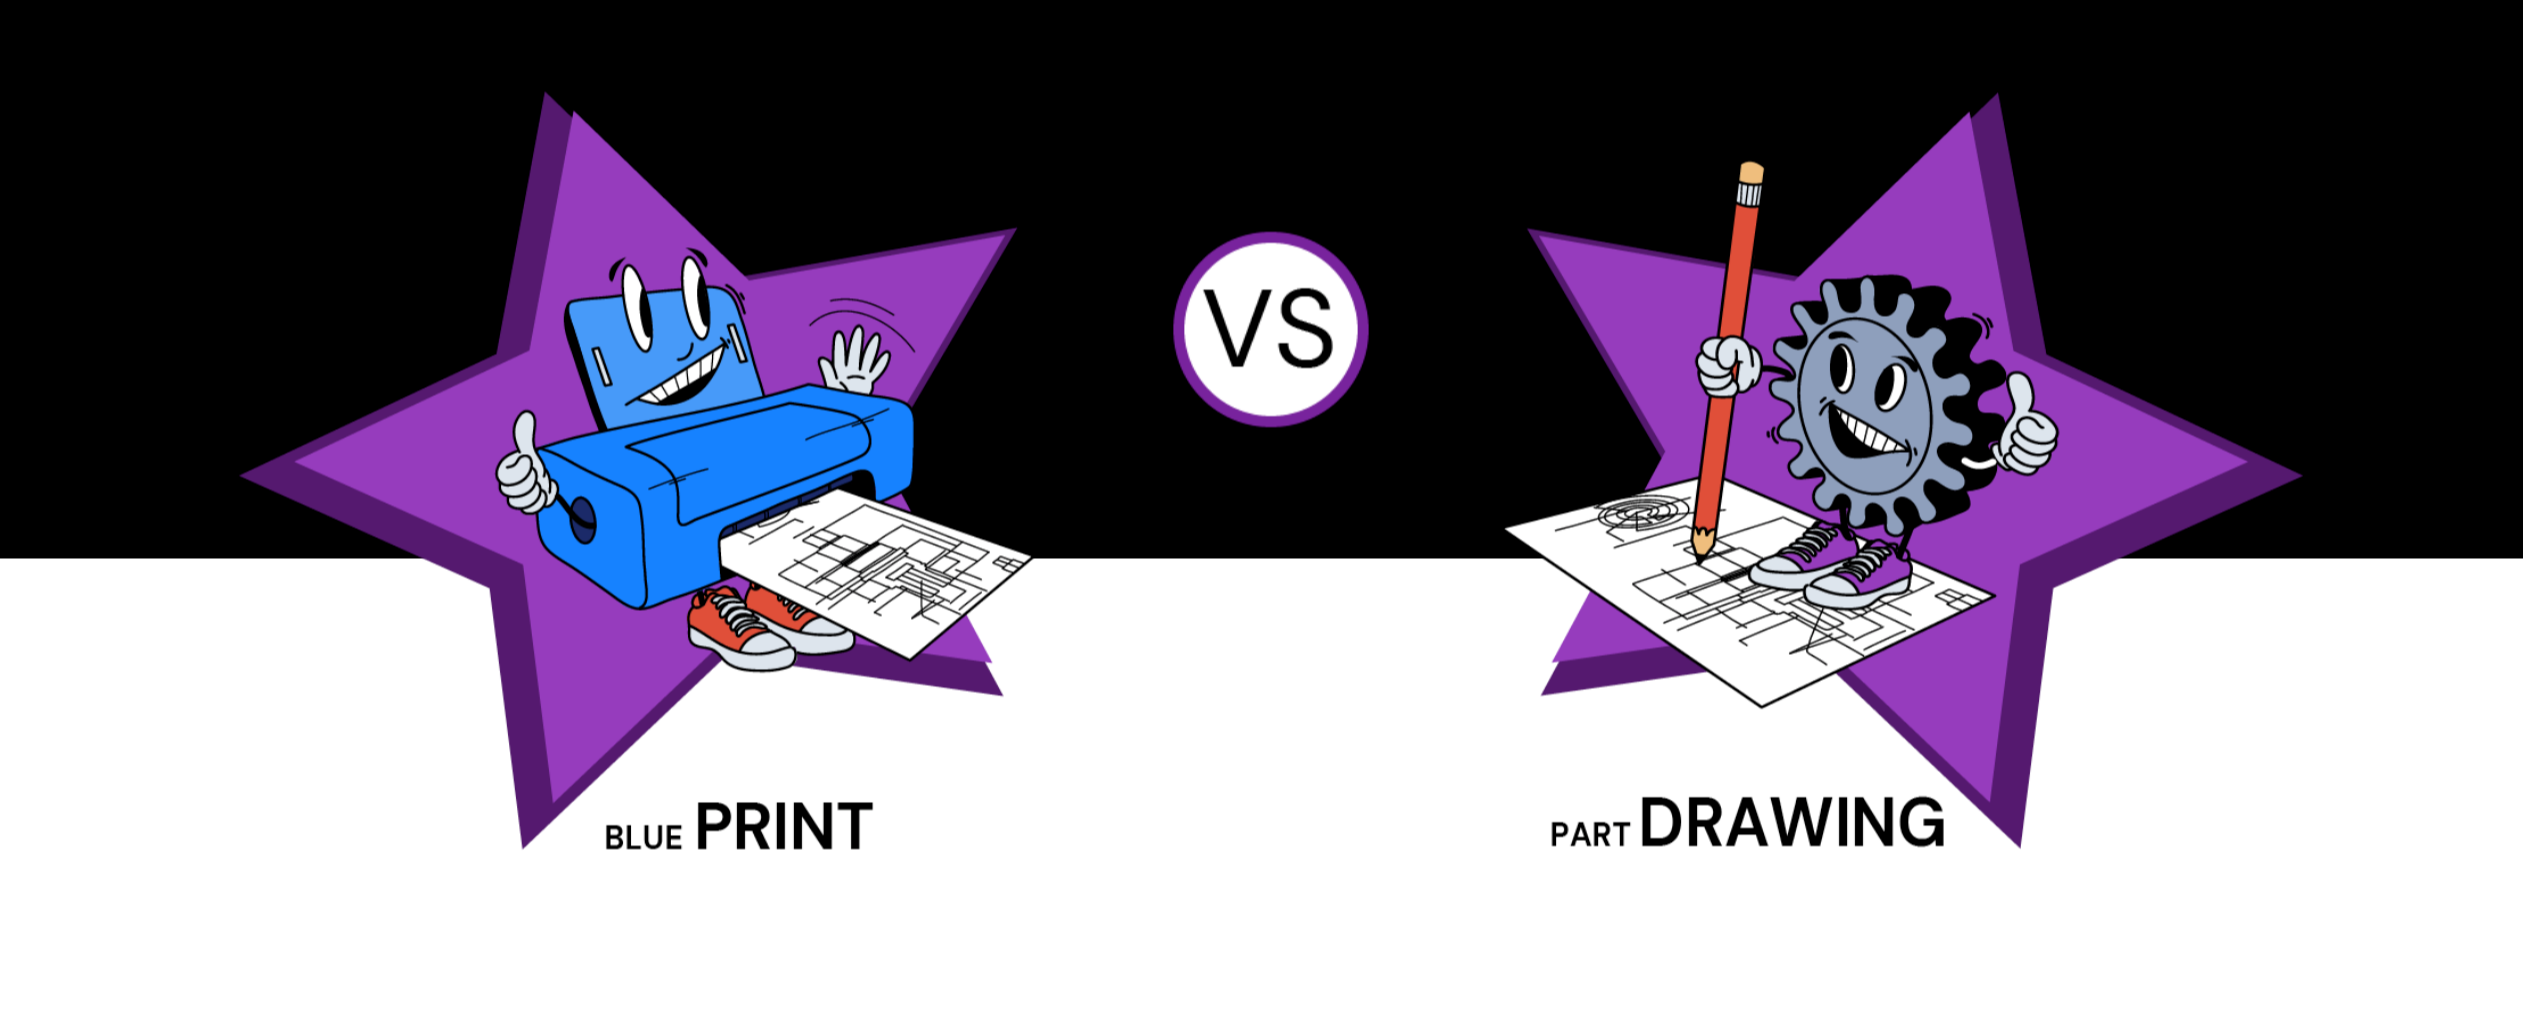 what do you call the paper you get from your customer? A blueprint or a part drawing?